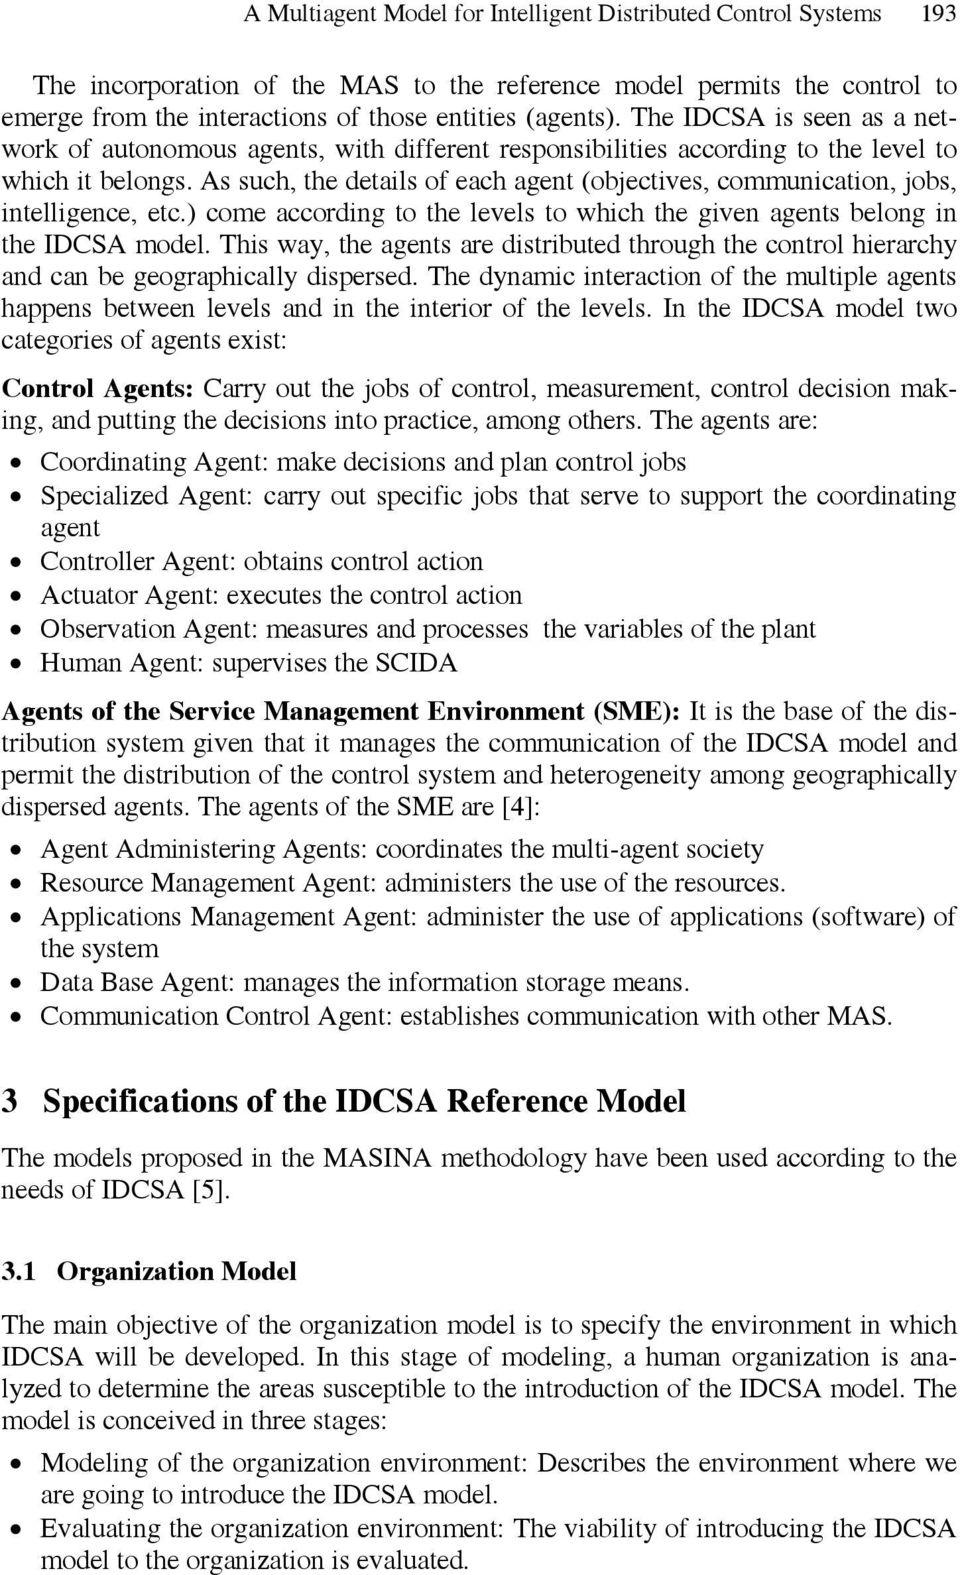 As such, the details of each agent (objectives, communication, jobs, intelligence, etc.) come according to the levels to which the given agents belong in the IDCSA model.